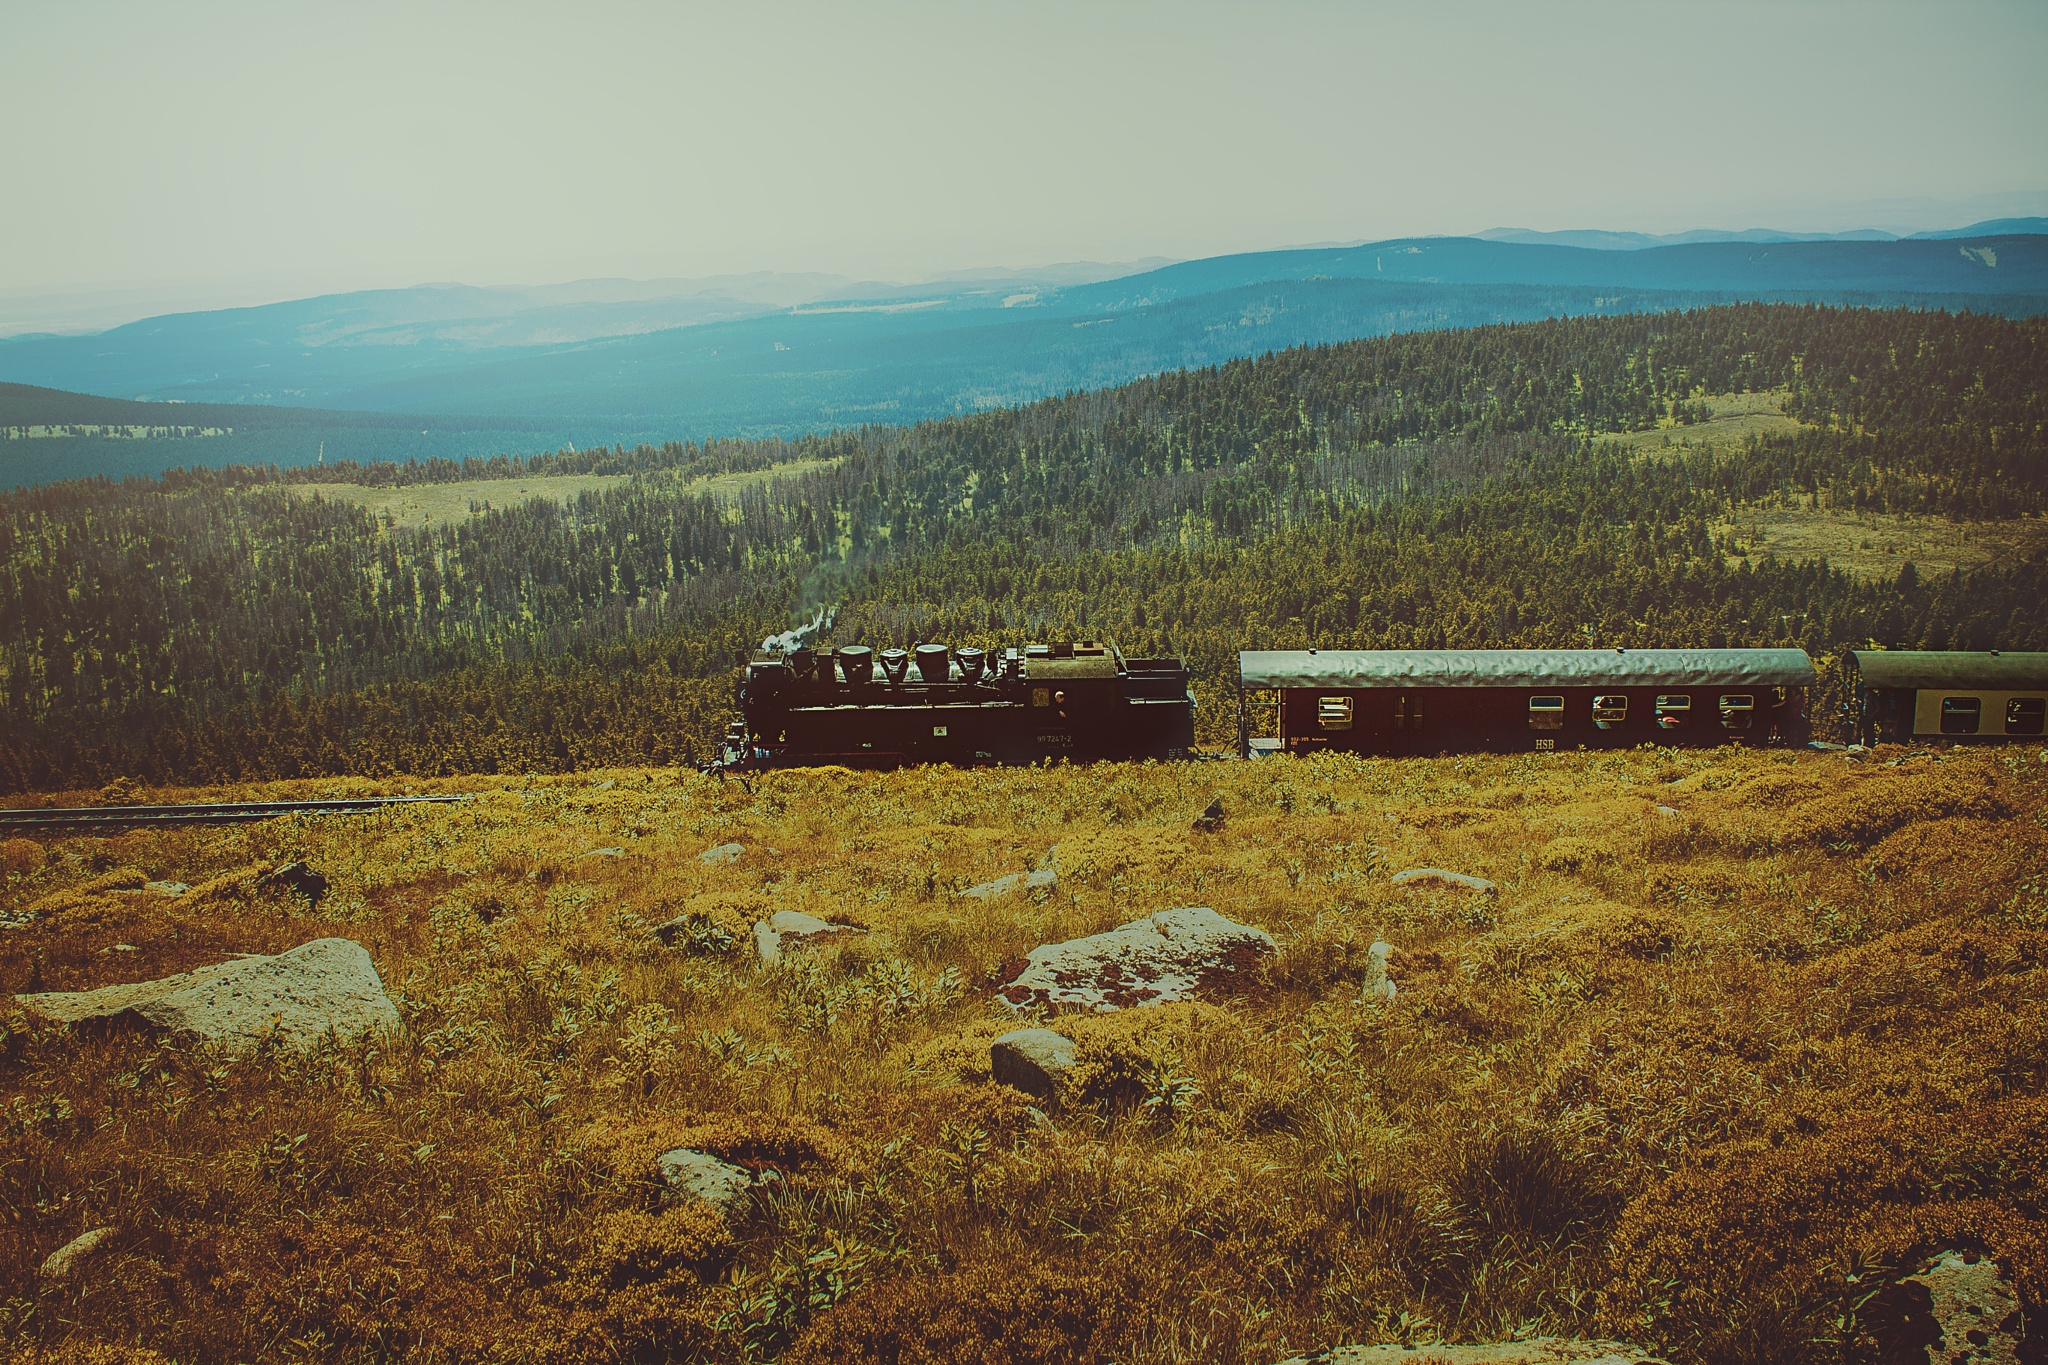 Movement on Brocken Germany by Cliff Warthold